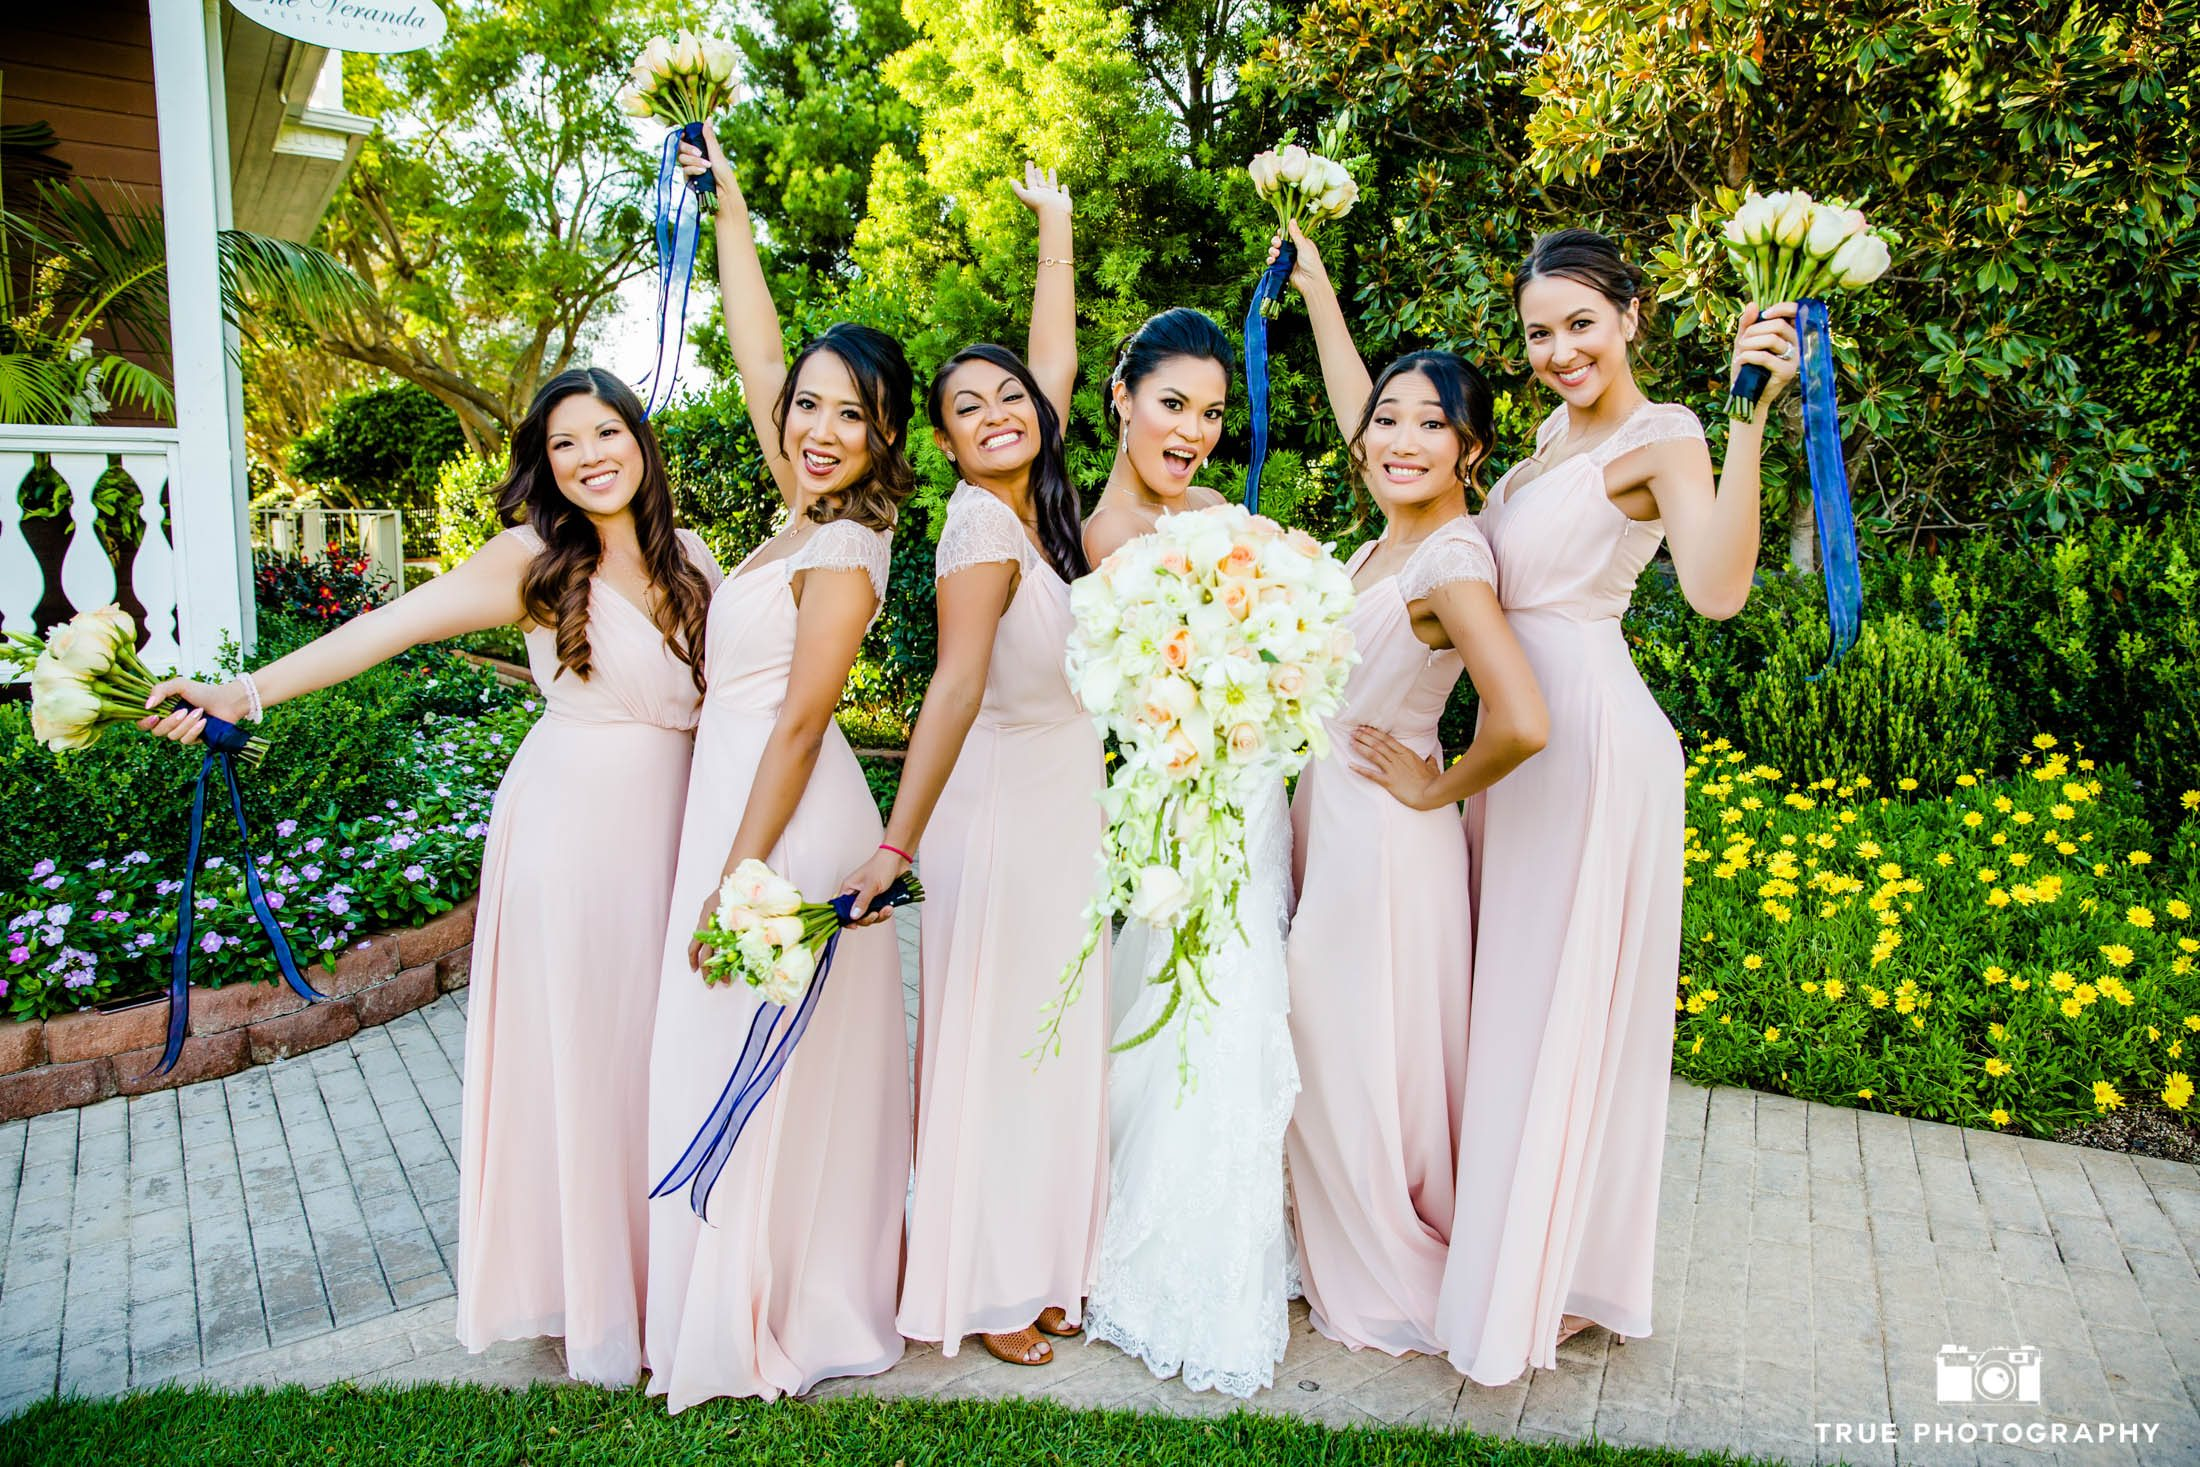 Bride and her bridesmaid celebrate and show their excitement